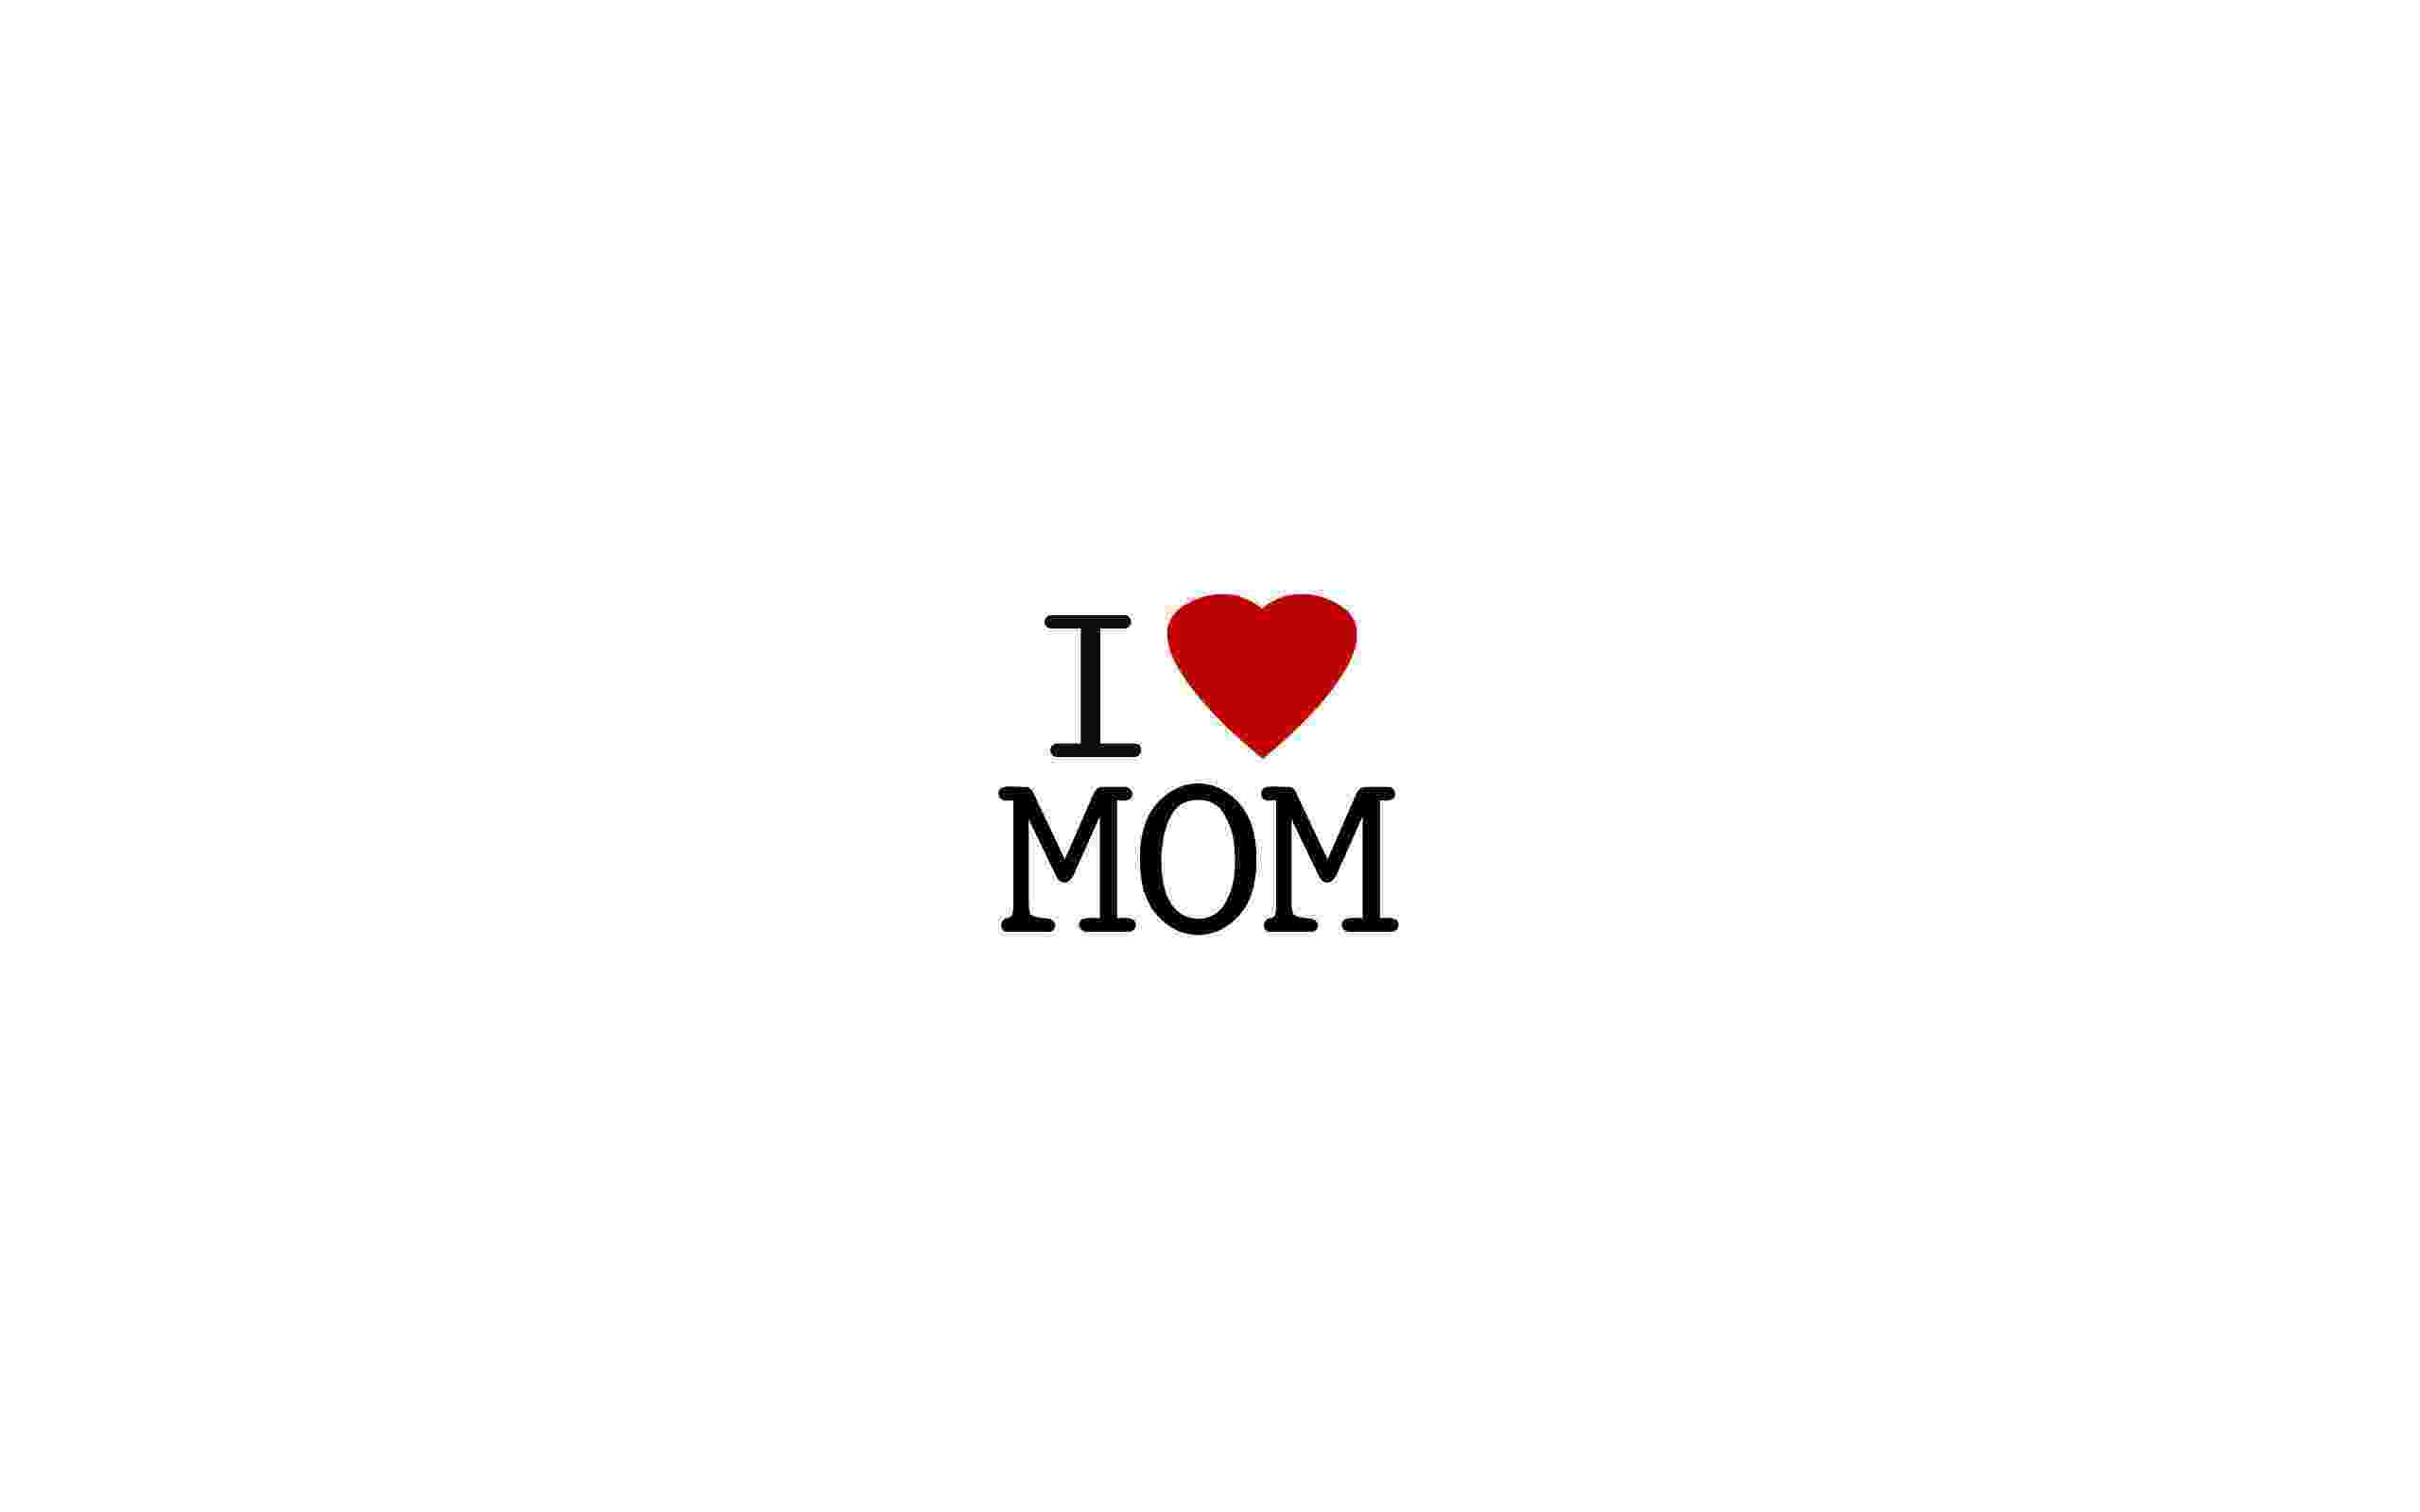 i love you mom and dad pictures i love you mom wallpapers wallpaper cave love you dad and pictures mom i